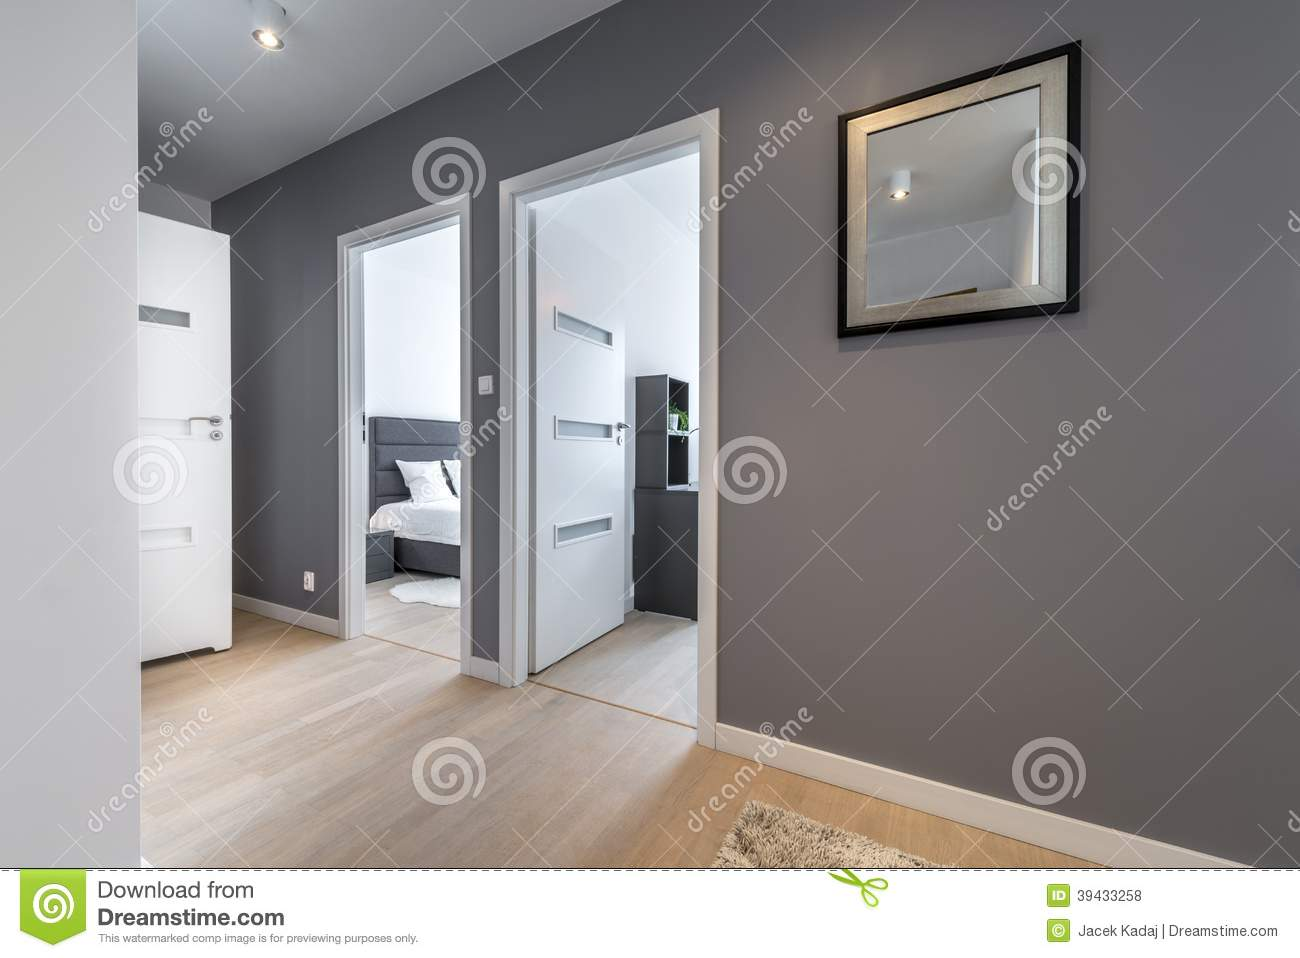 Couloir en appartement moderne photo stock image 39433258 - Couleur appartement moderne ...